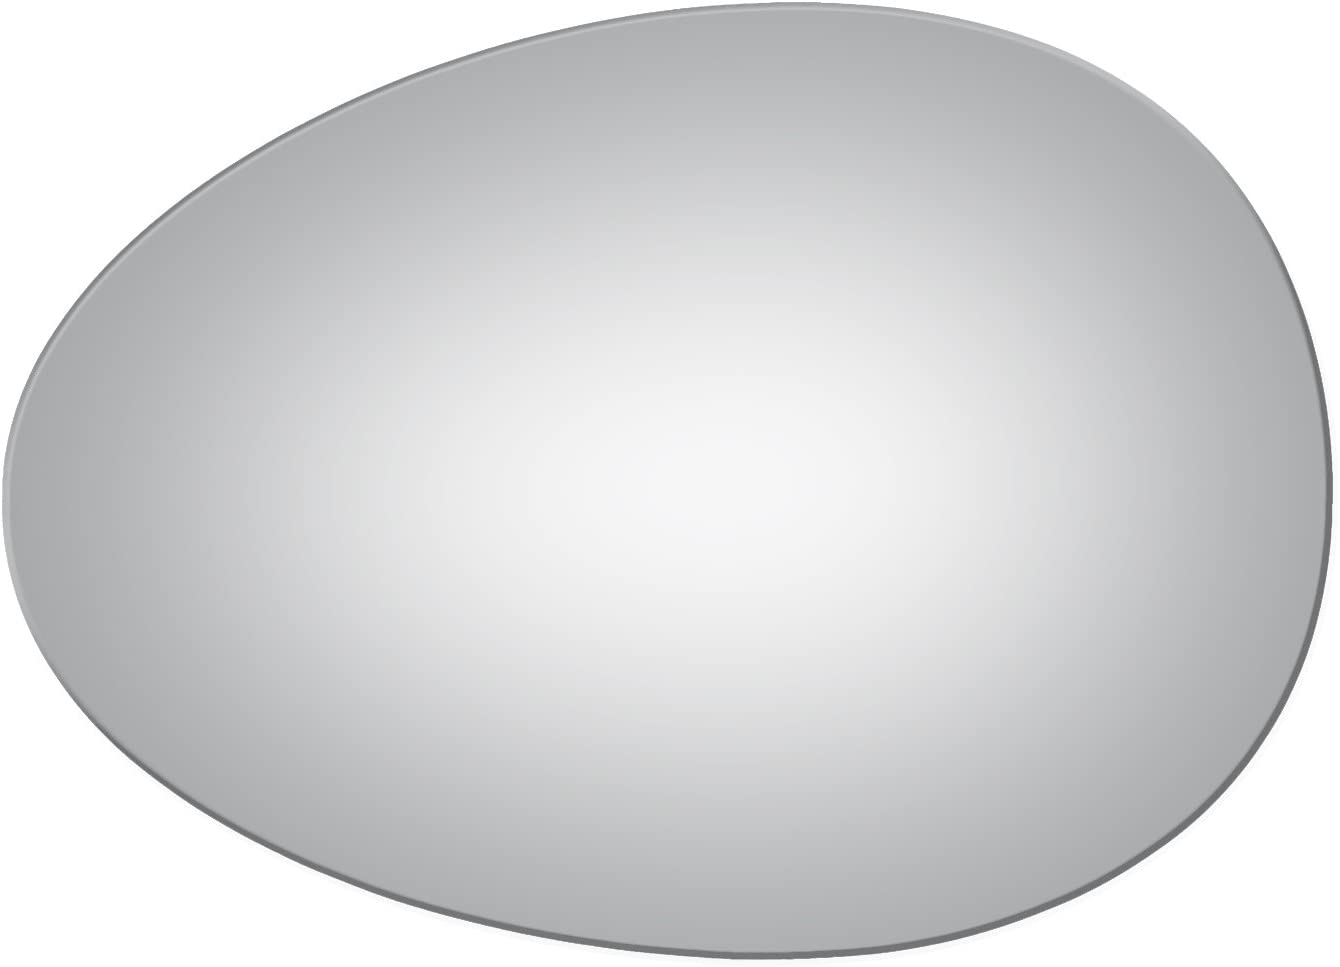 Flat Driver Side Branded goods Mirror Replacement COO MINI Max 82% OFF Glass for 2007-2015